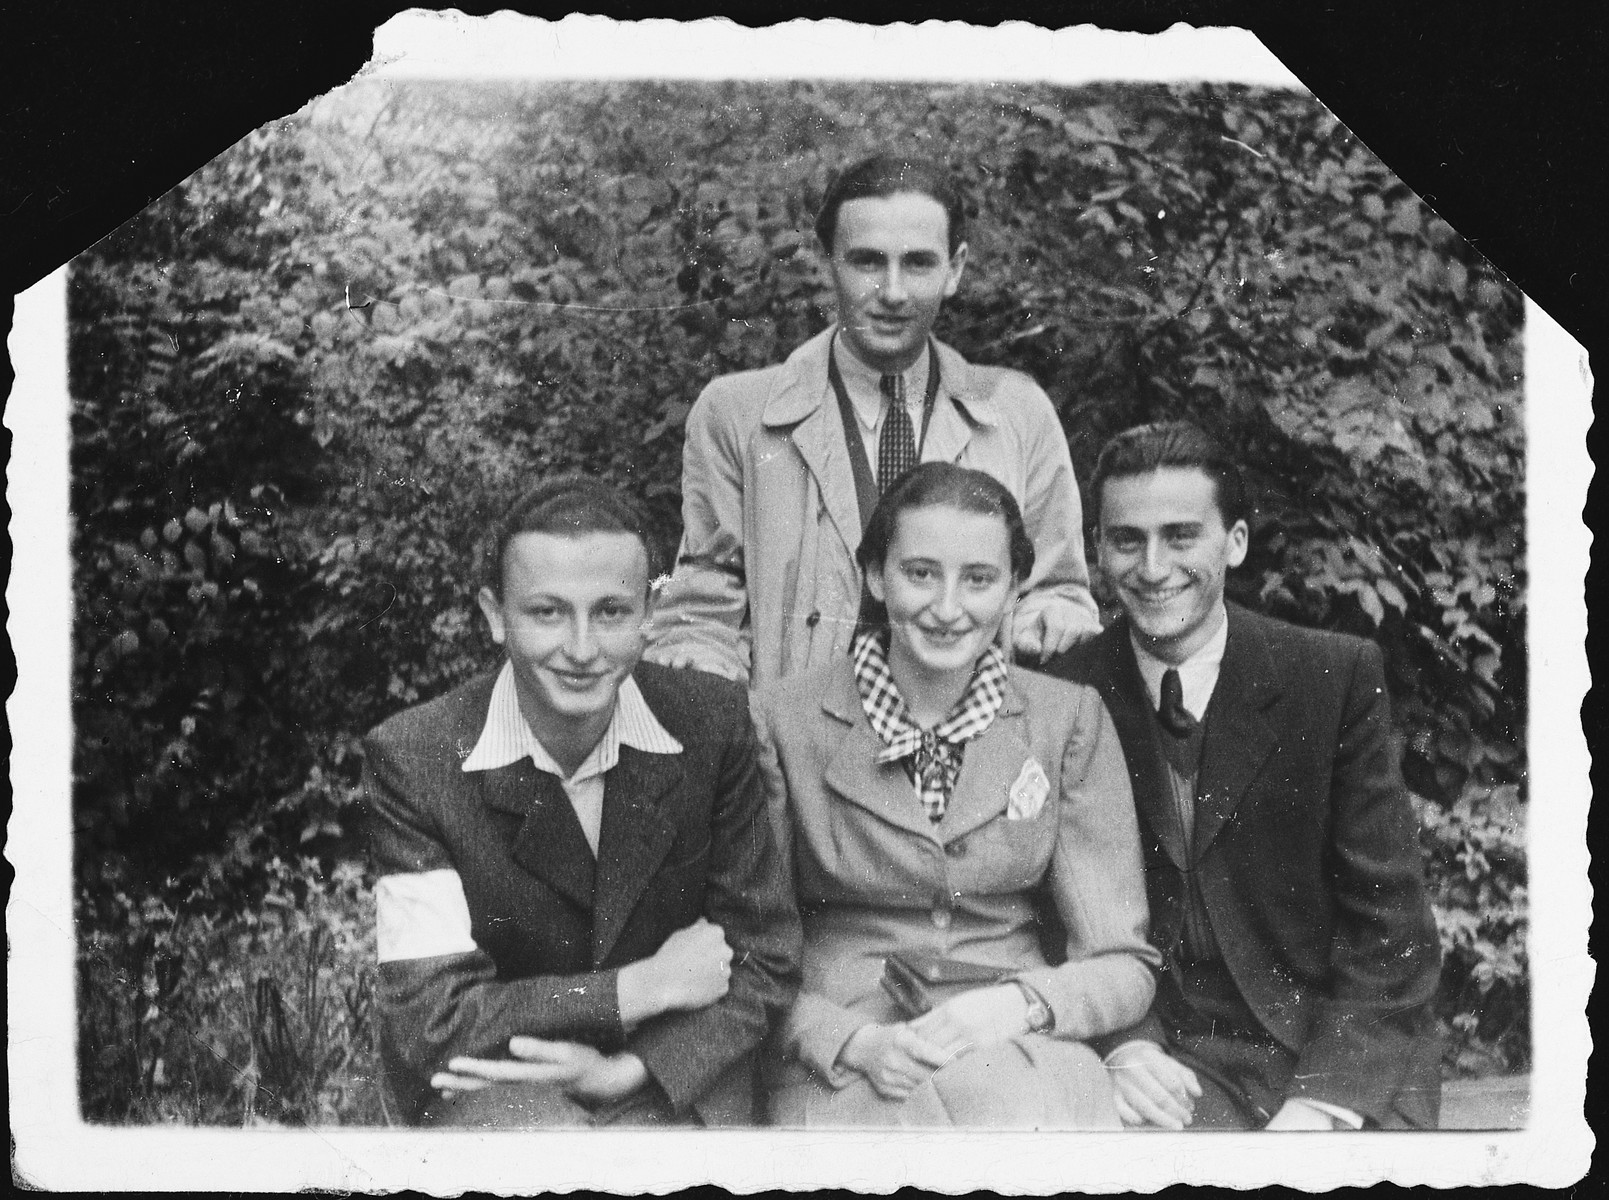 Four young people, one of whom is wearing an armband, pose together in the Krakow ghetto.  Seated from left to right are Manek Springut Werdinger, Sabina Kleiner and Garfunkel.  Standing is Josef Hilfstein.  Both Sabina Kleiner and Garfunkel perished in the Holocaust.